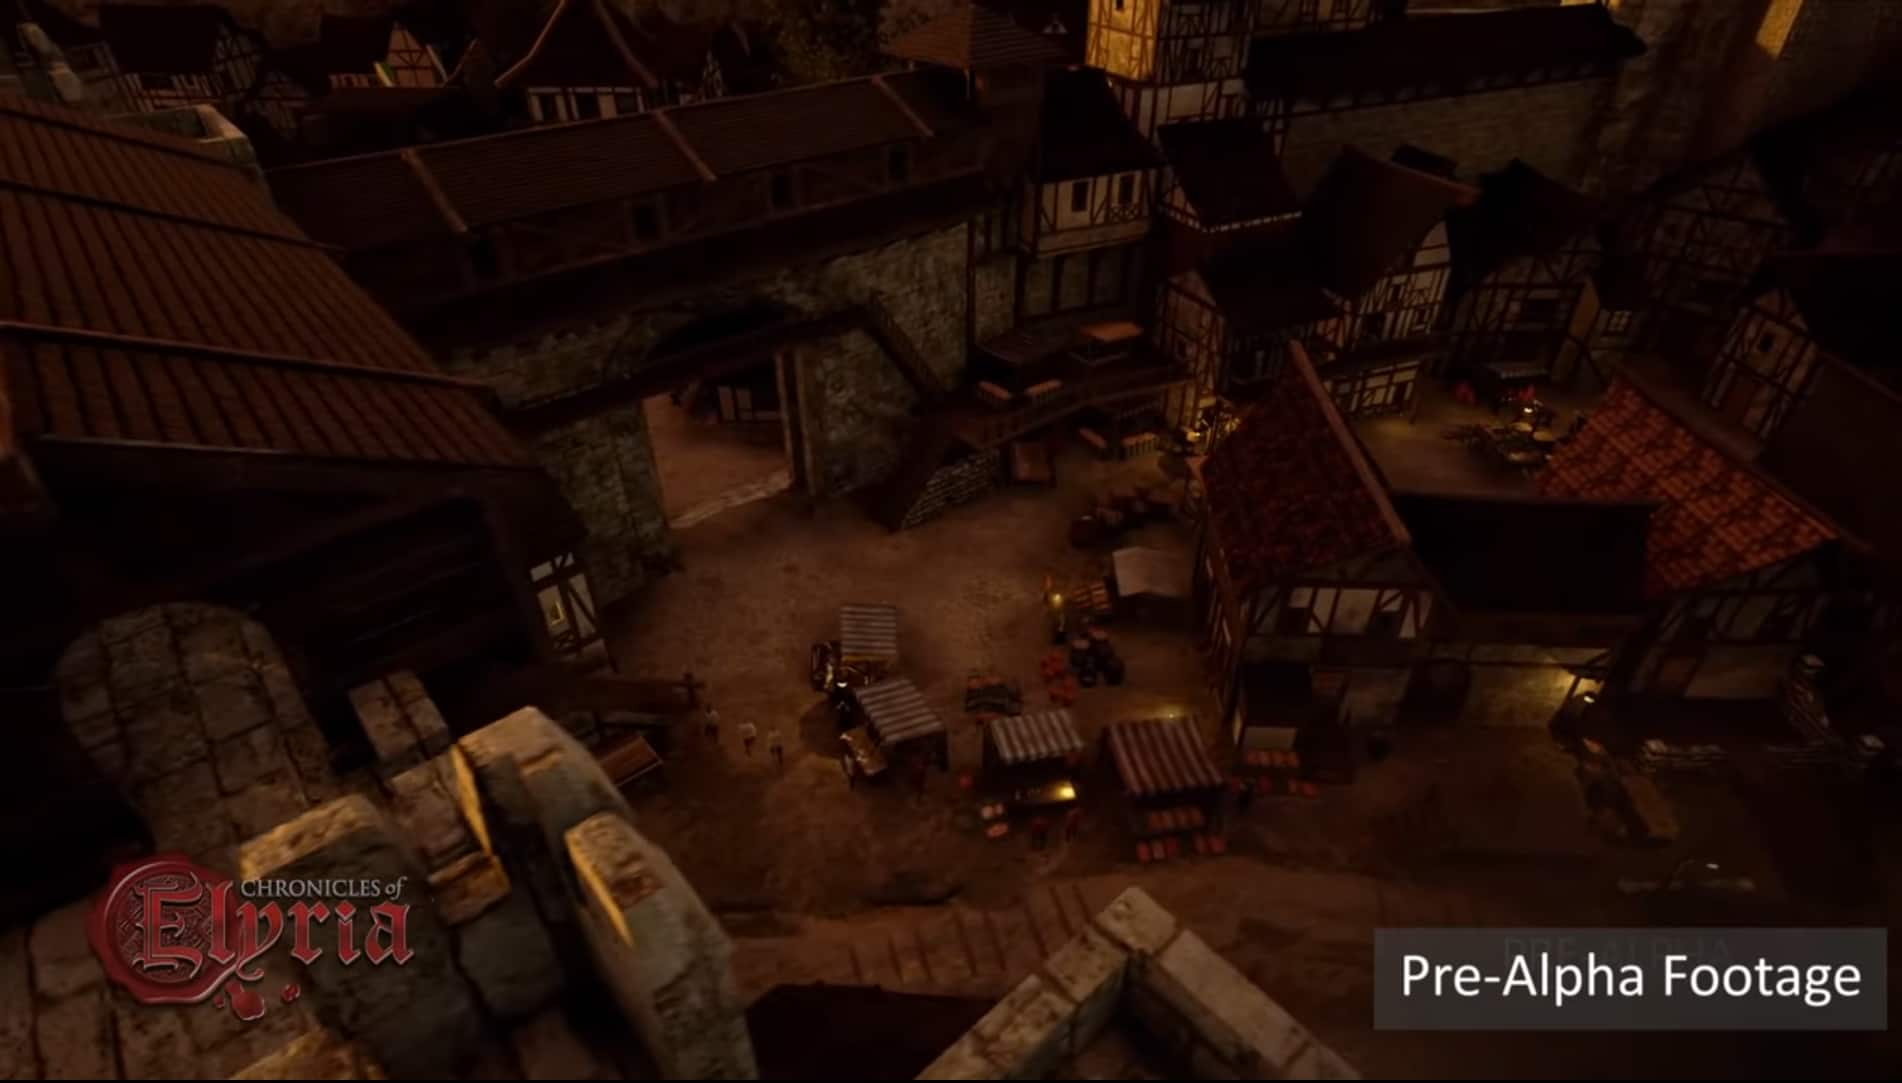 Inside Chronicles of Elyria Part 2 Provides Info On Where CoE Is headed 2